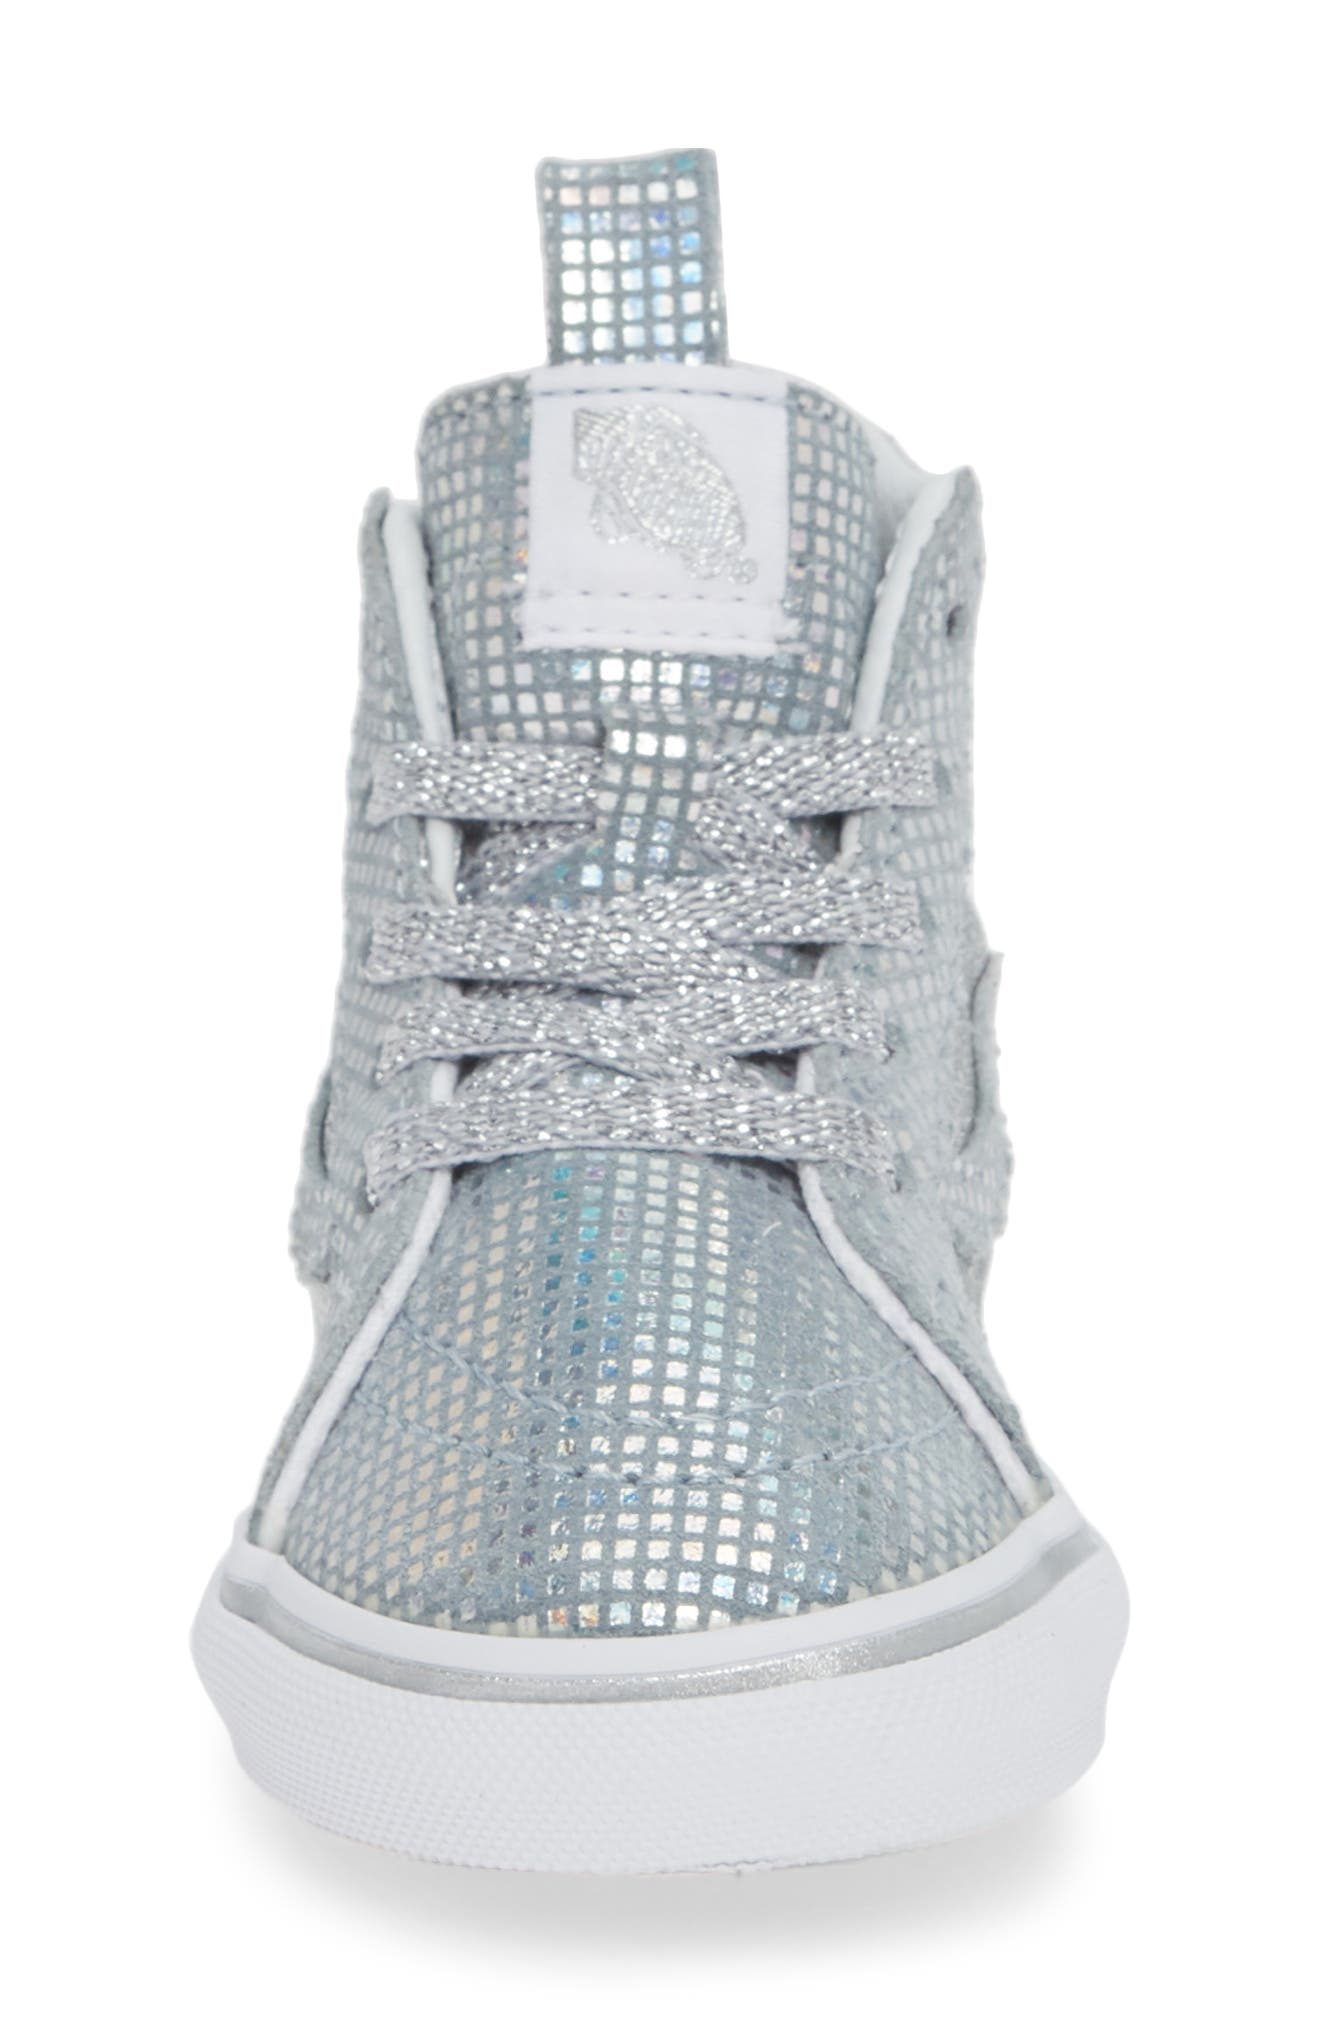 SK8-Hi Zip Sparkle Sneaker,                             Alternate thumbnail 4, color,                             METALLIC SILVER GLITTER